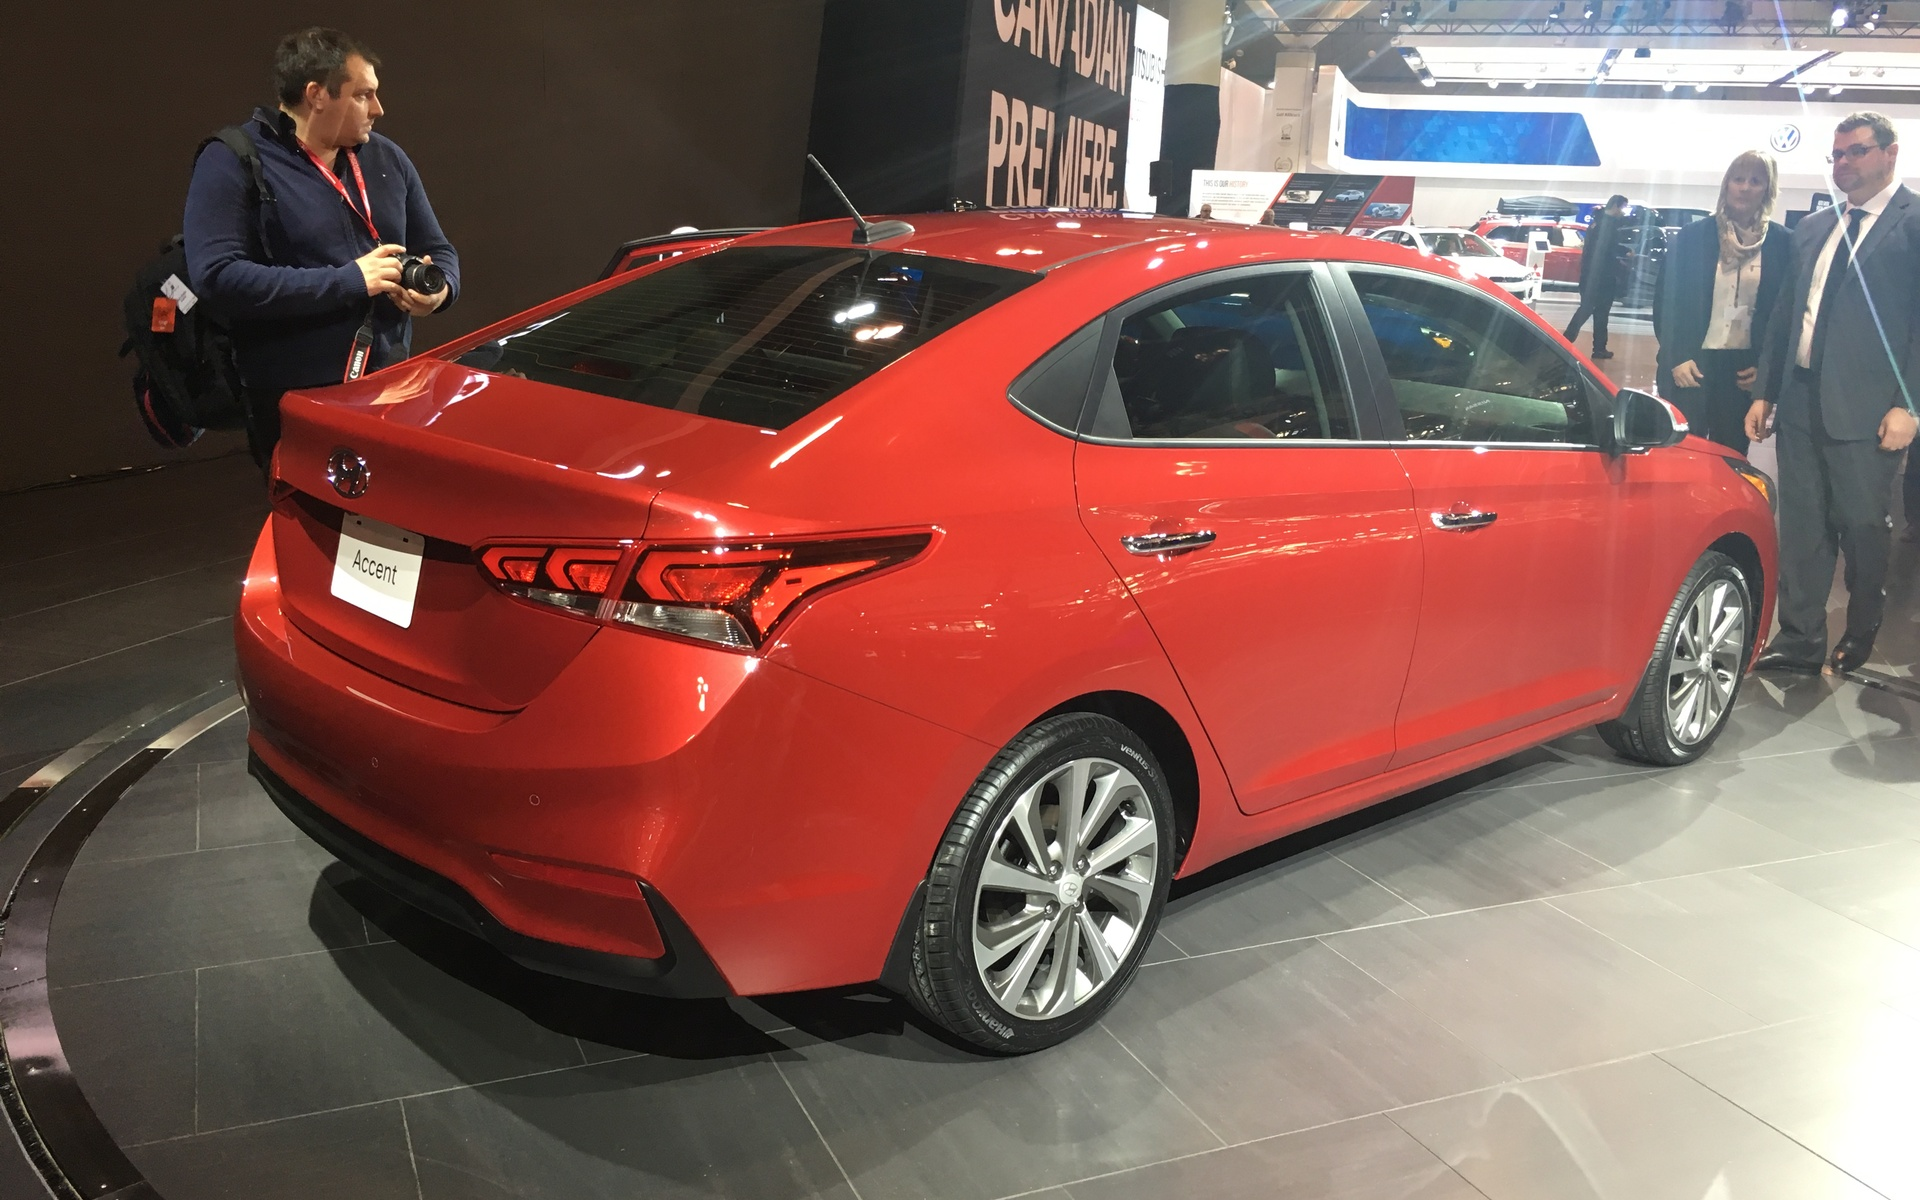 Hyundai Accent World Premiere In Toronto The Car Guide - Toronto car show 2018